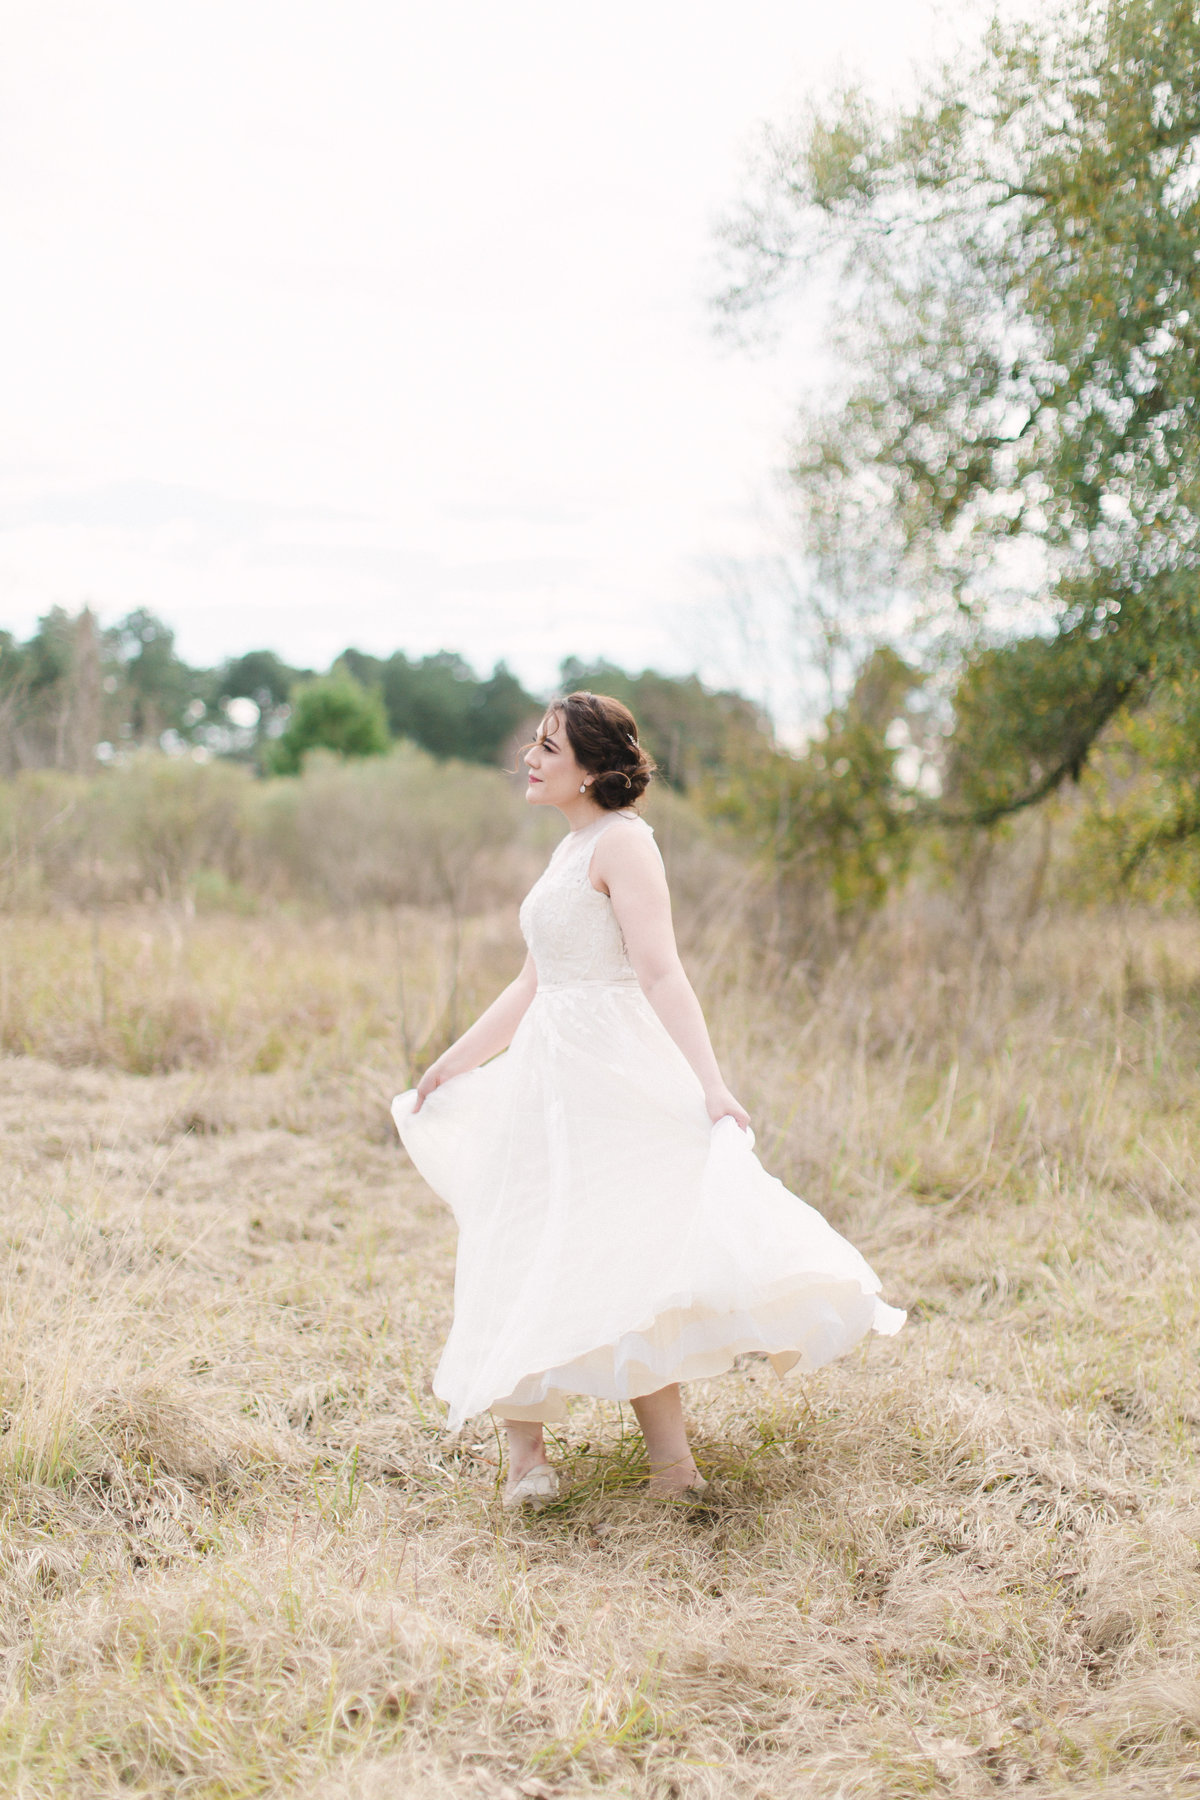 The-woodlands-bridal-session-alicia-yarrish-photography-22